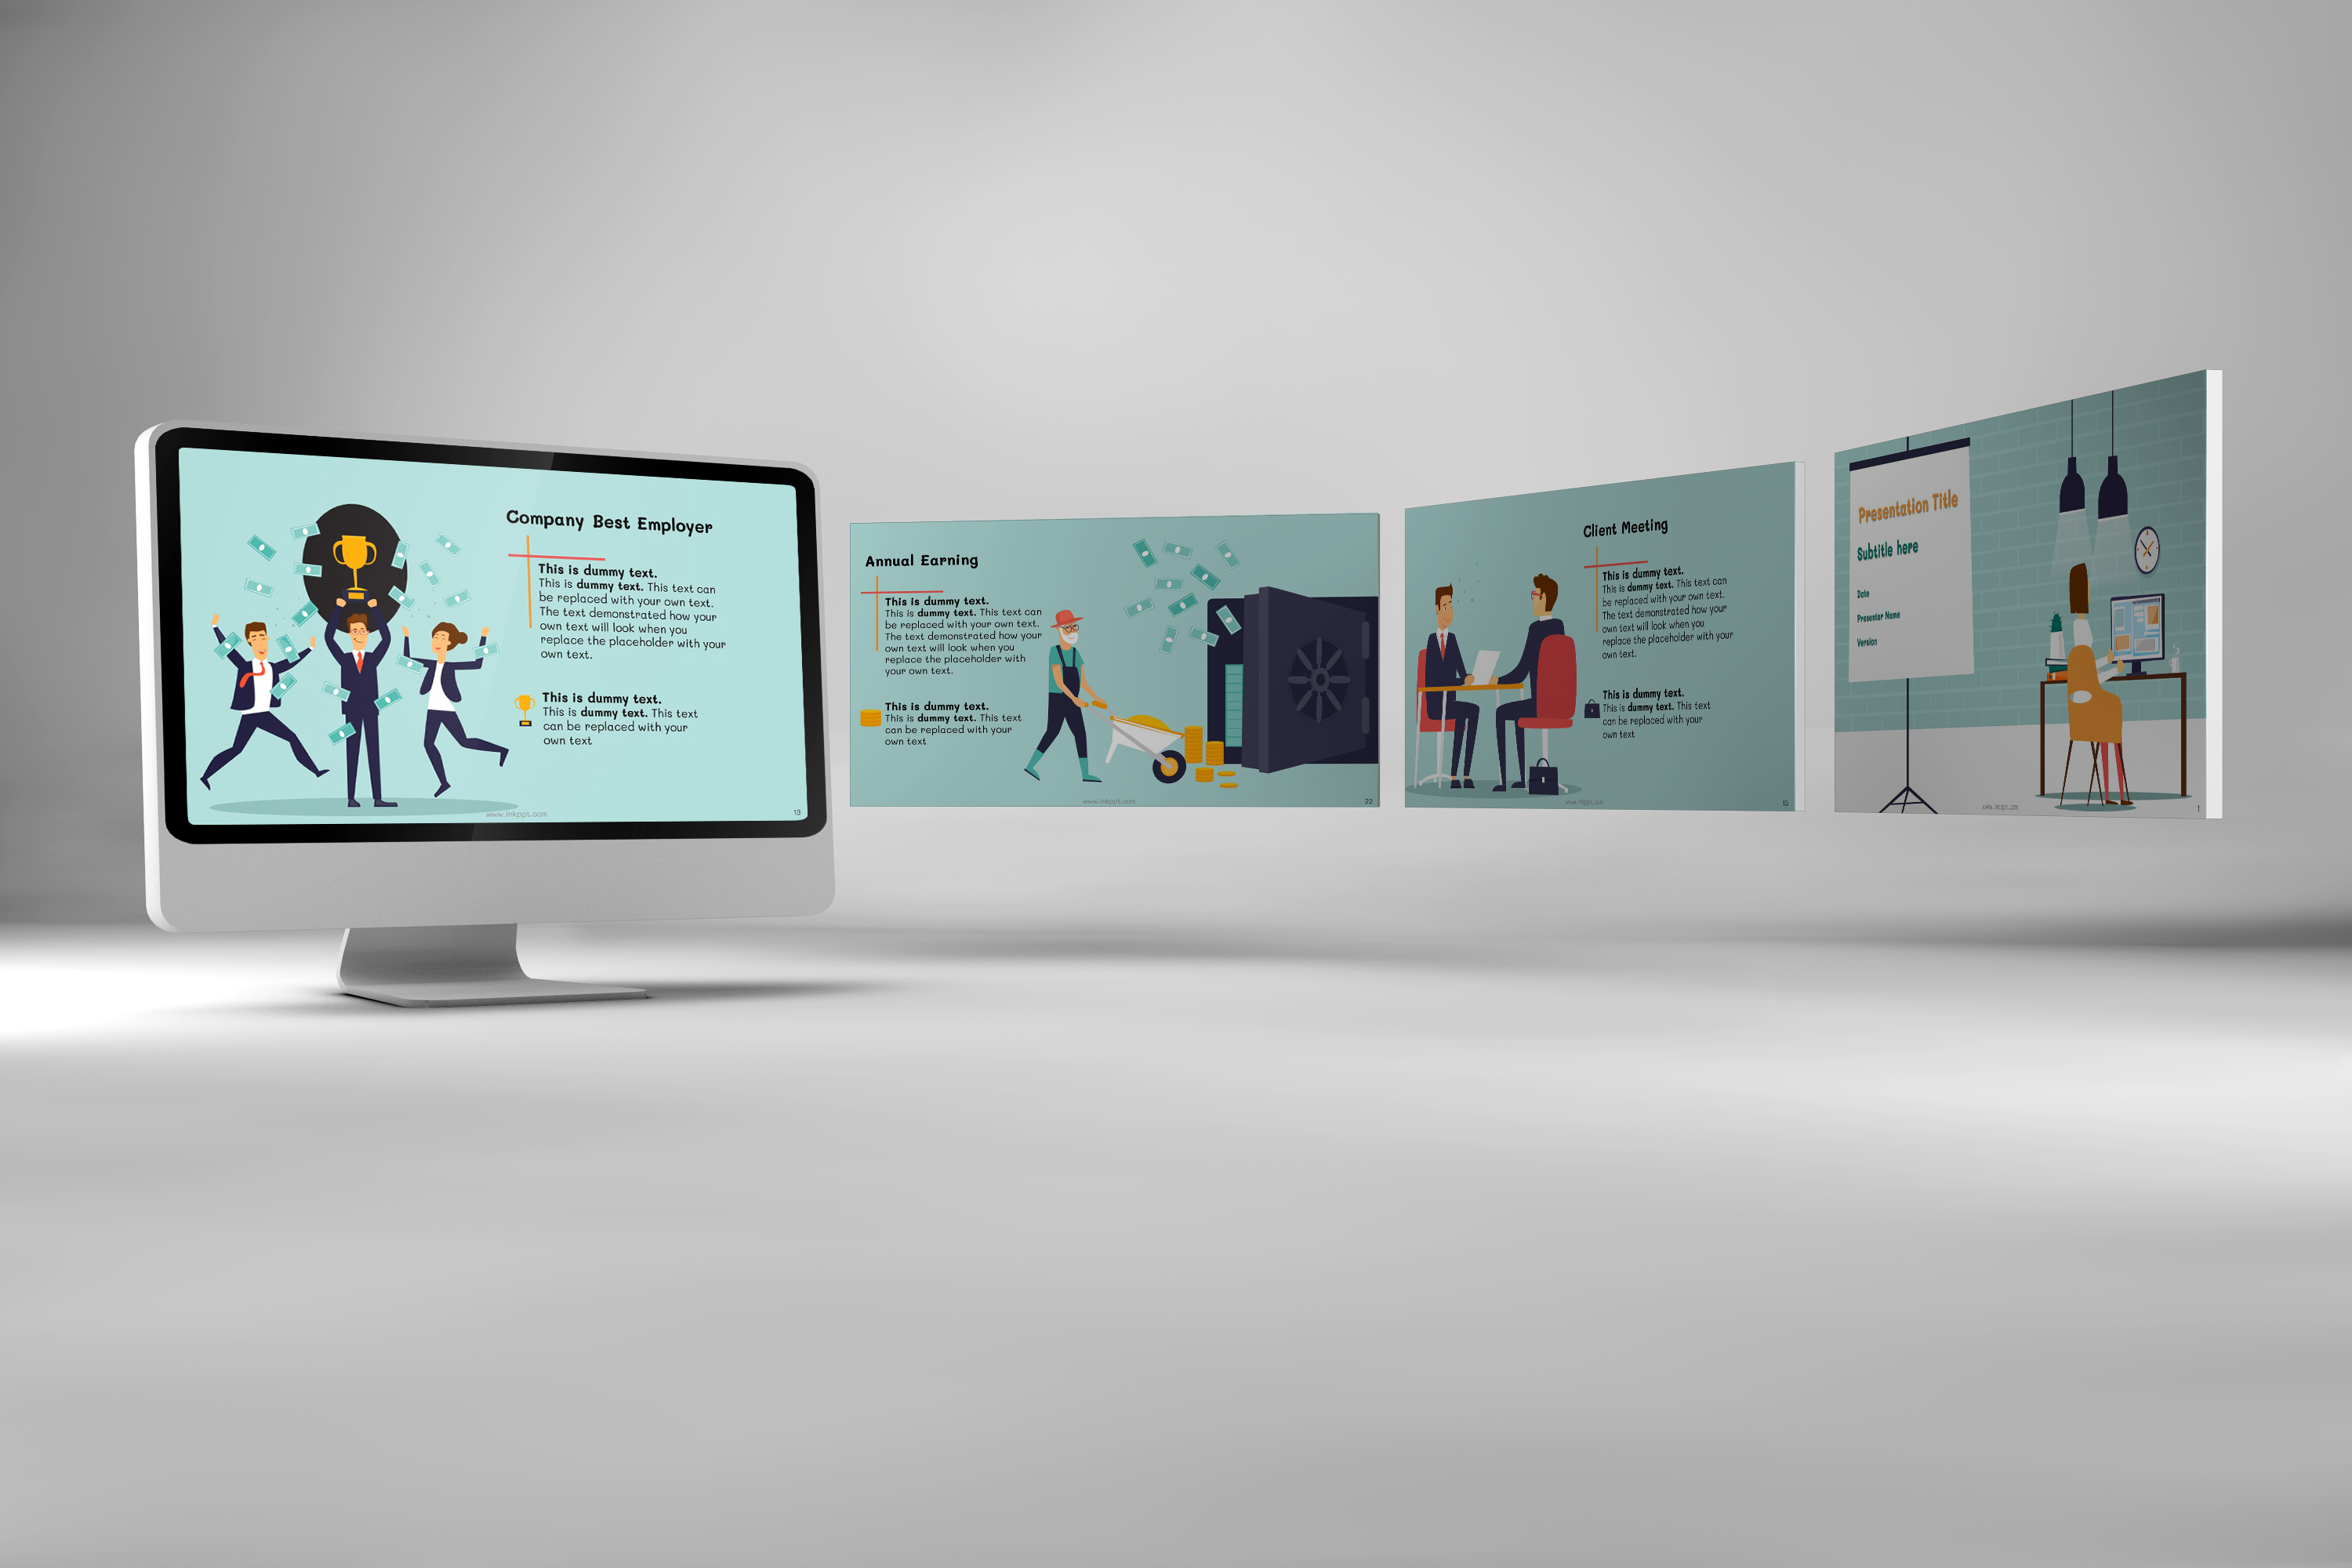 Corporate Functions PowerPoint Template example image 3